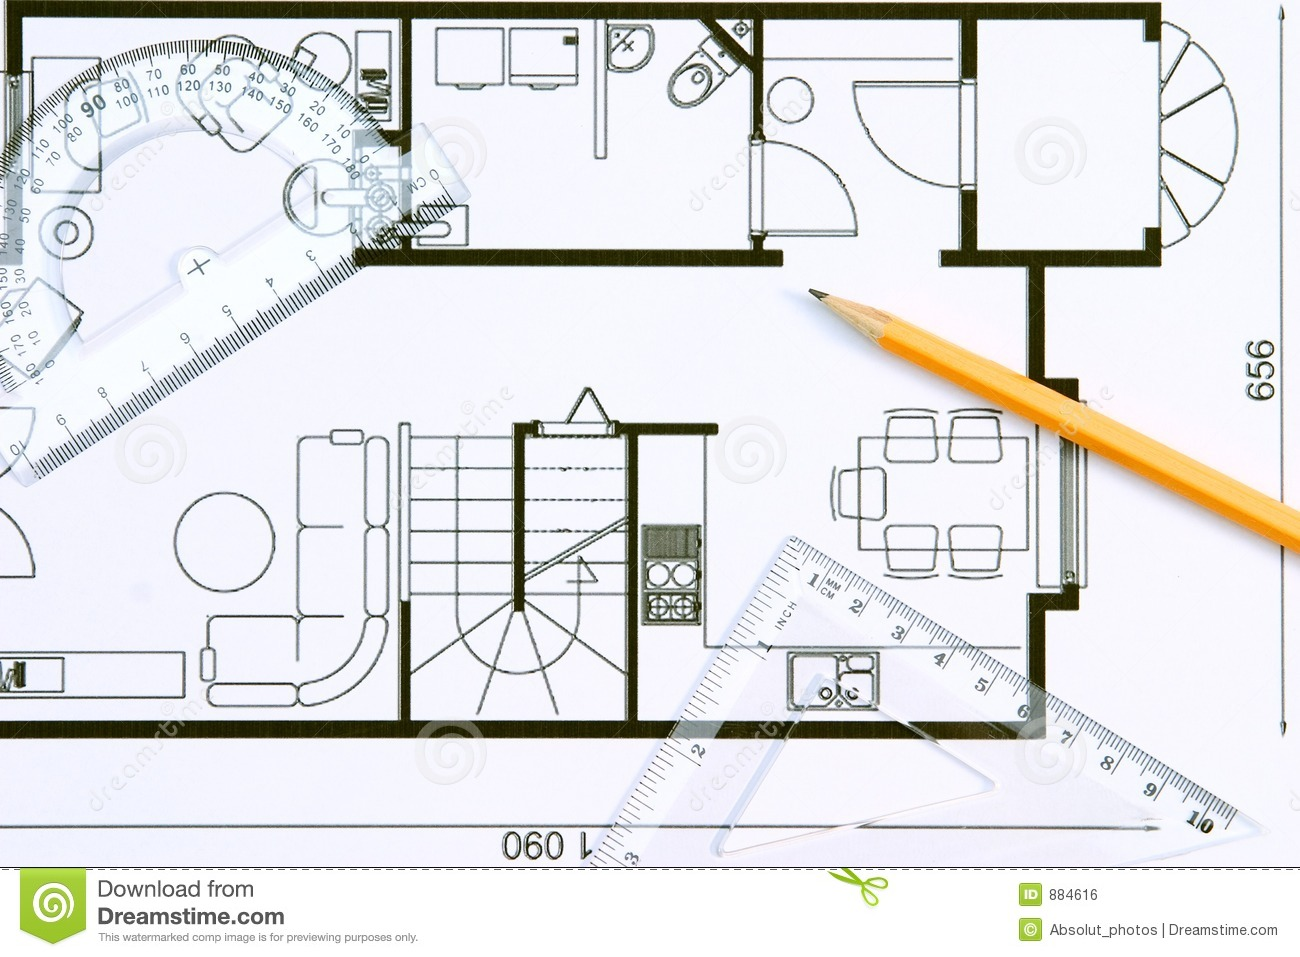 Floor plan royalty free stock image image 884616 for Stock floor plans